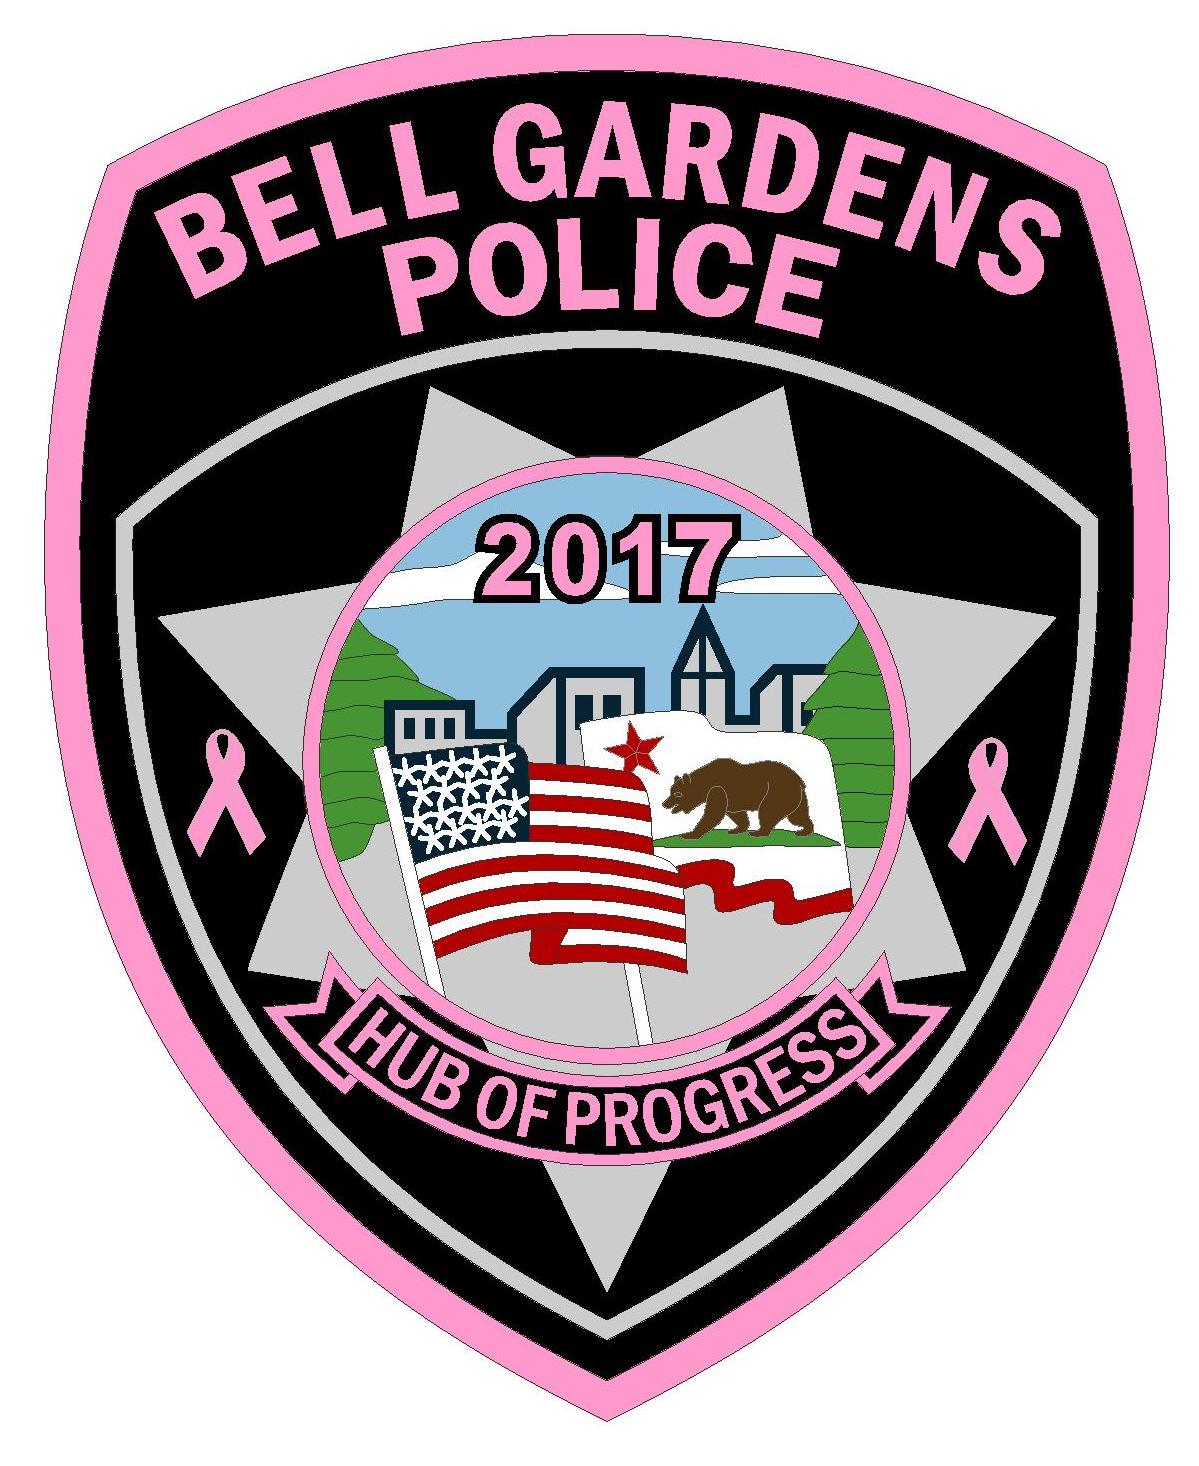 BELL GARDENS (CA) - PINK PATCH 2017-page-001.jpg